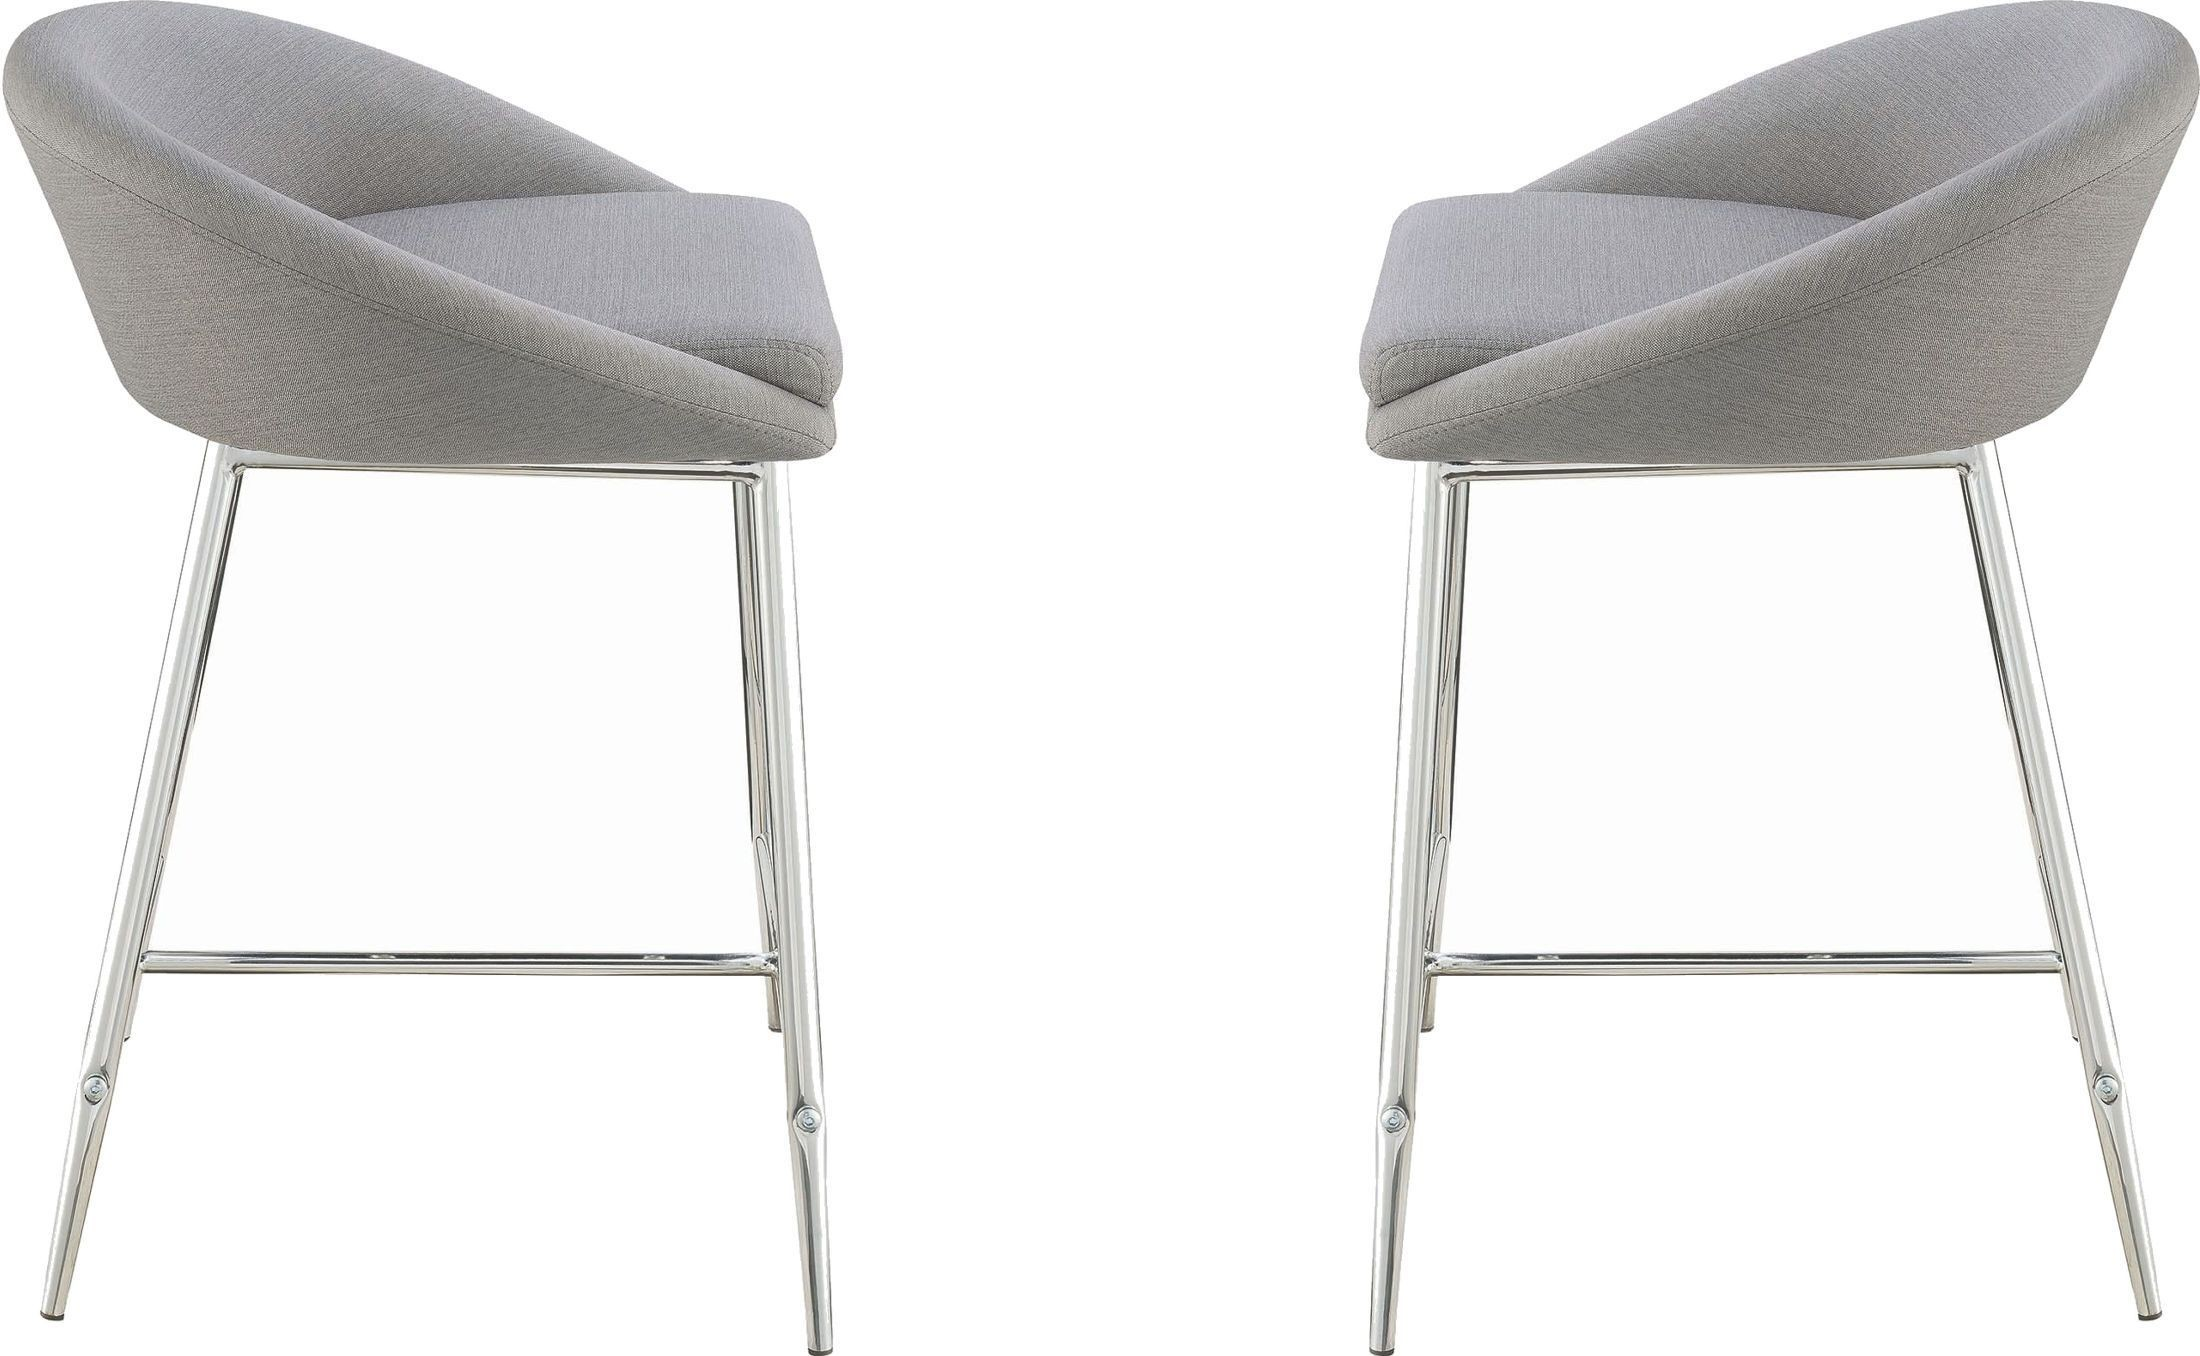 upholstered counter height chair wedding covers hire northern ireland rec room grey stool set of 2